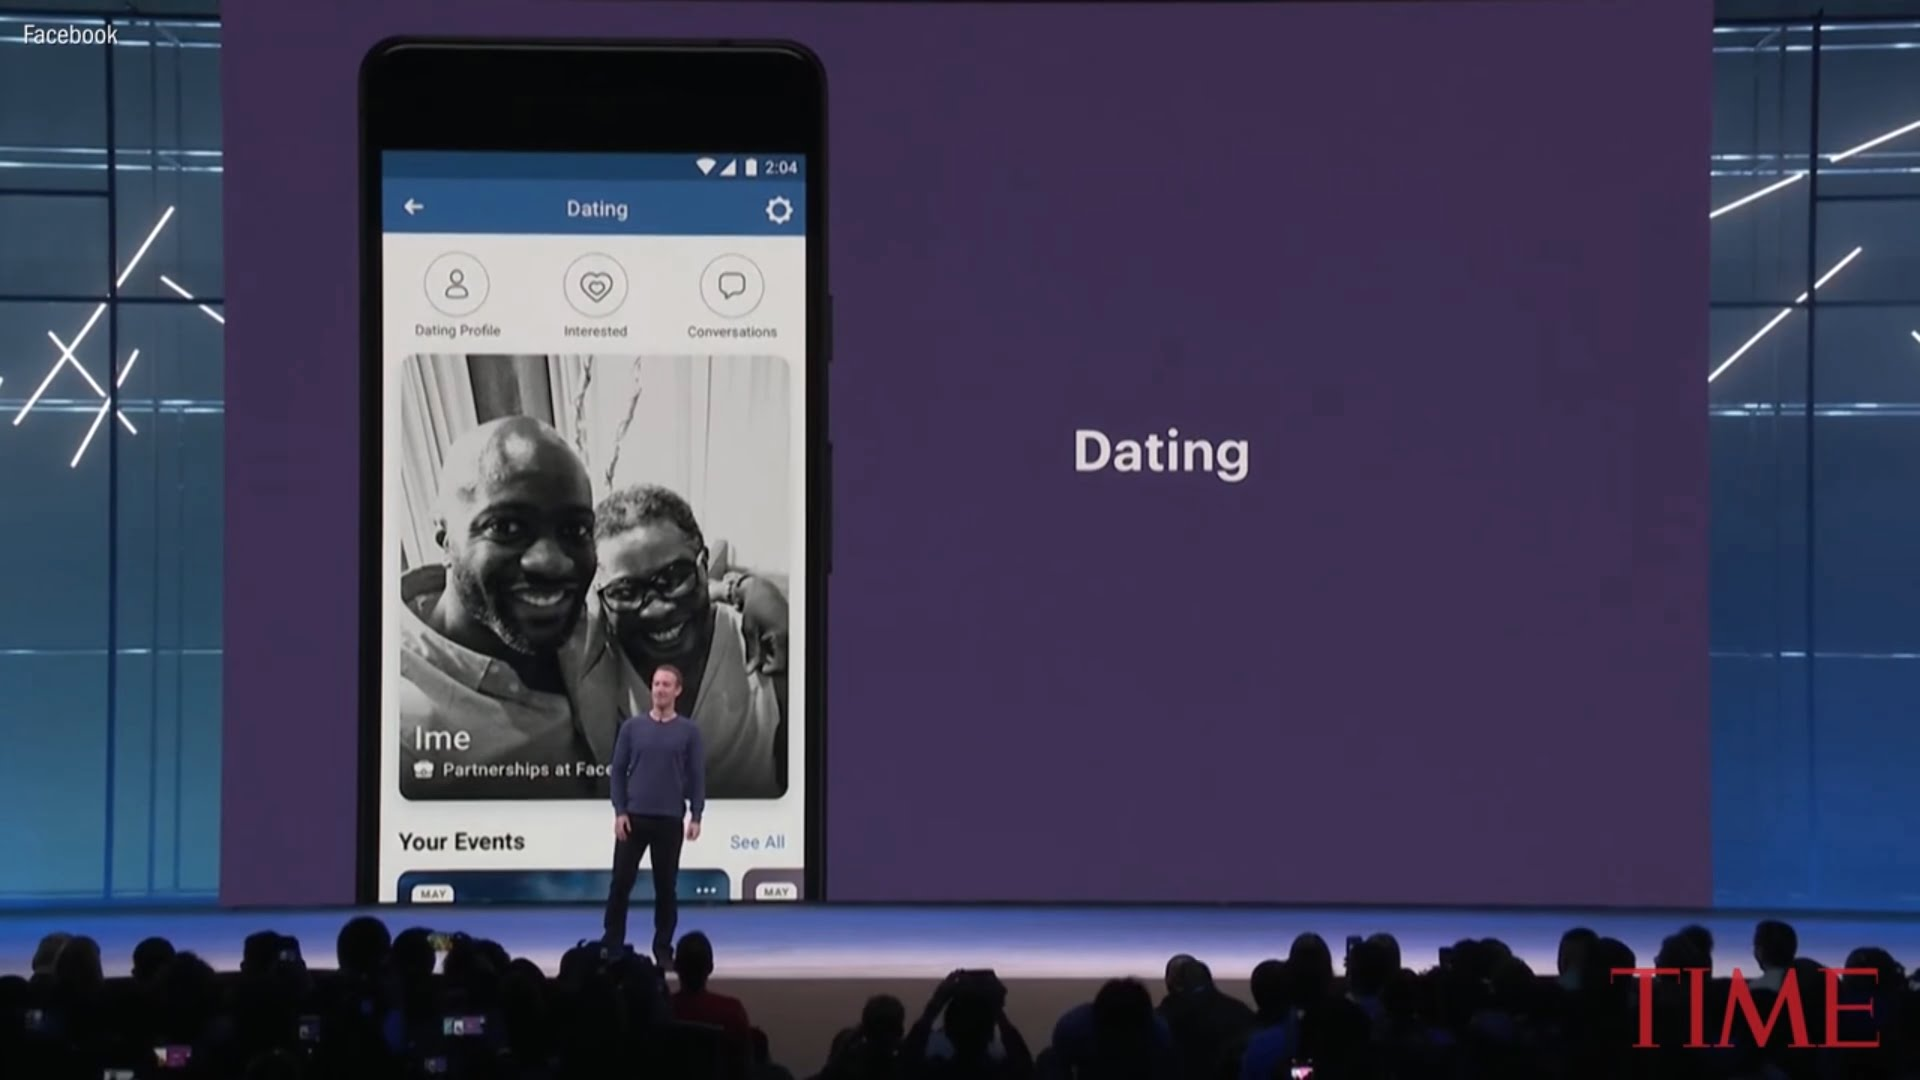 Facebook dating is finally here!